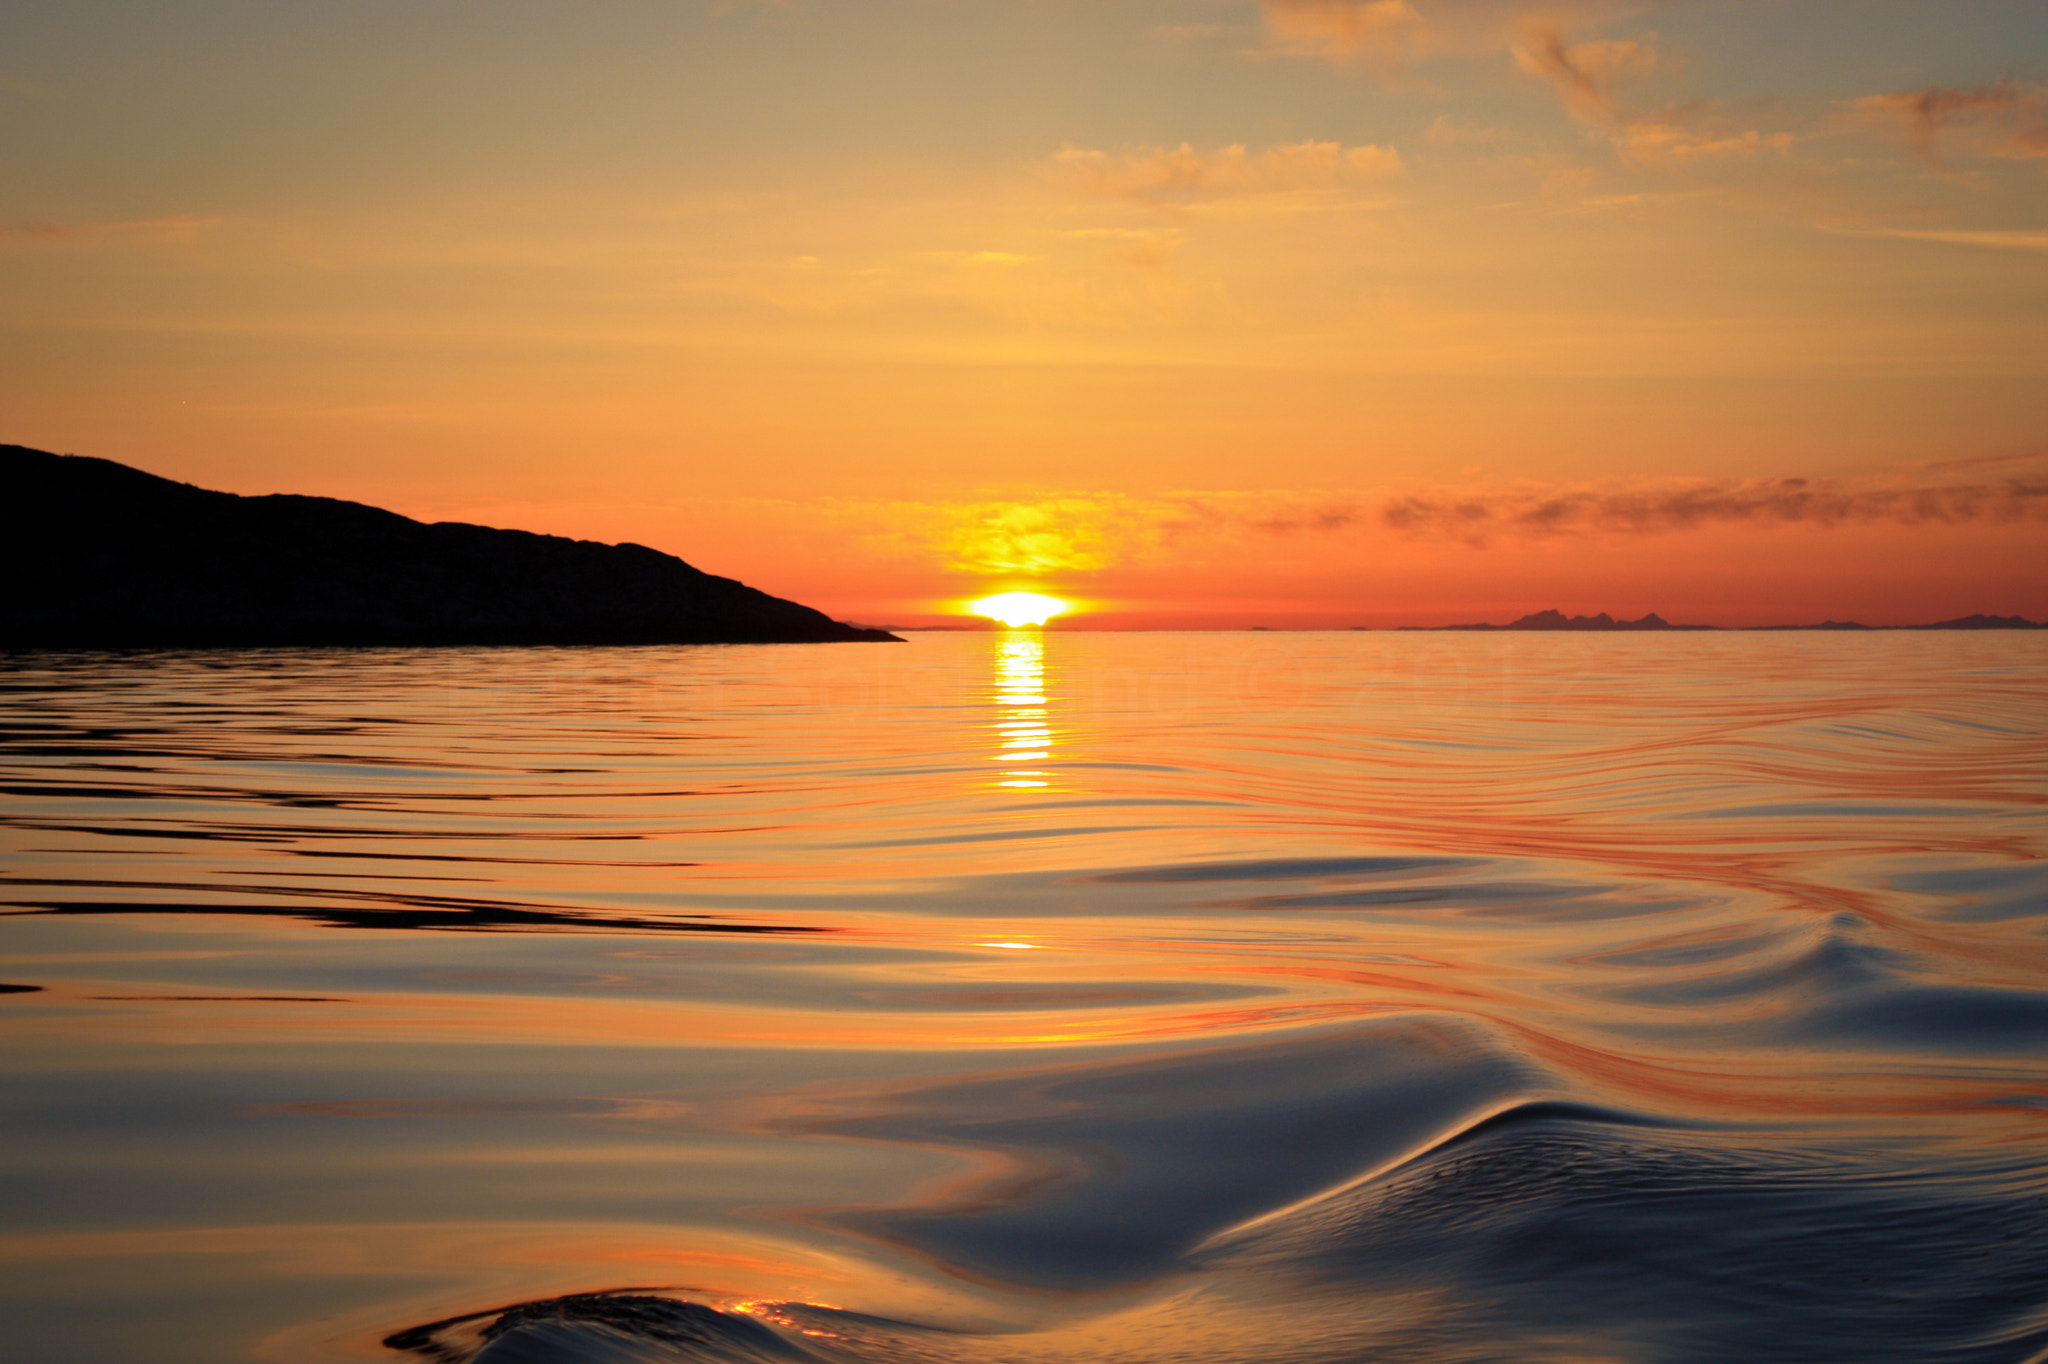 Photograph Ocean view of a sunset by Daniel Solstrand on 500px